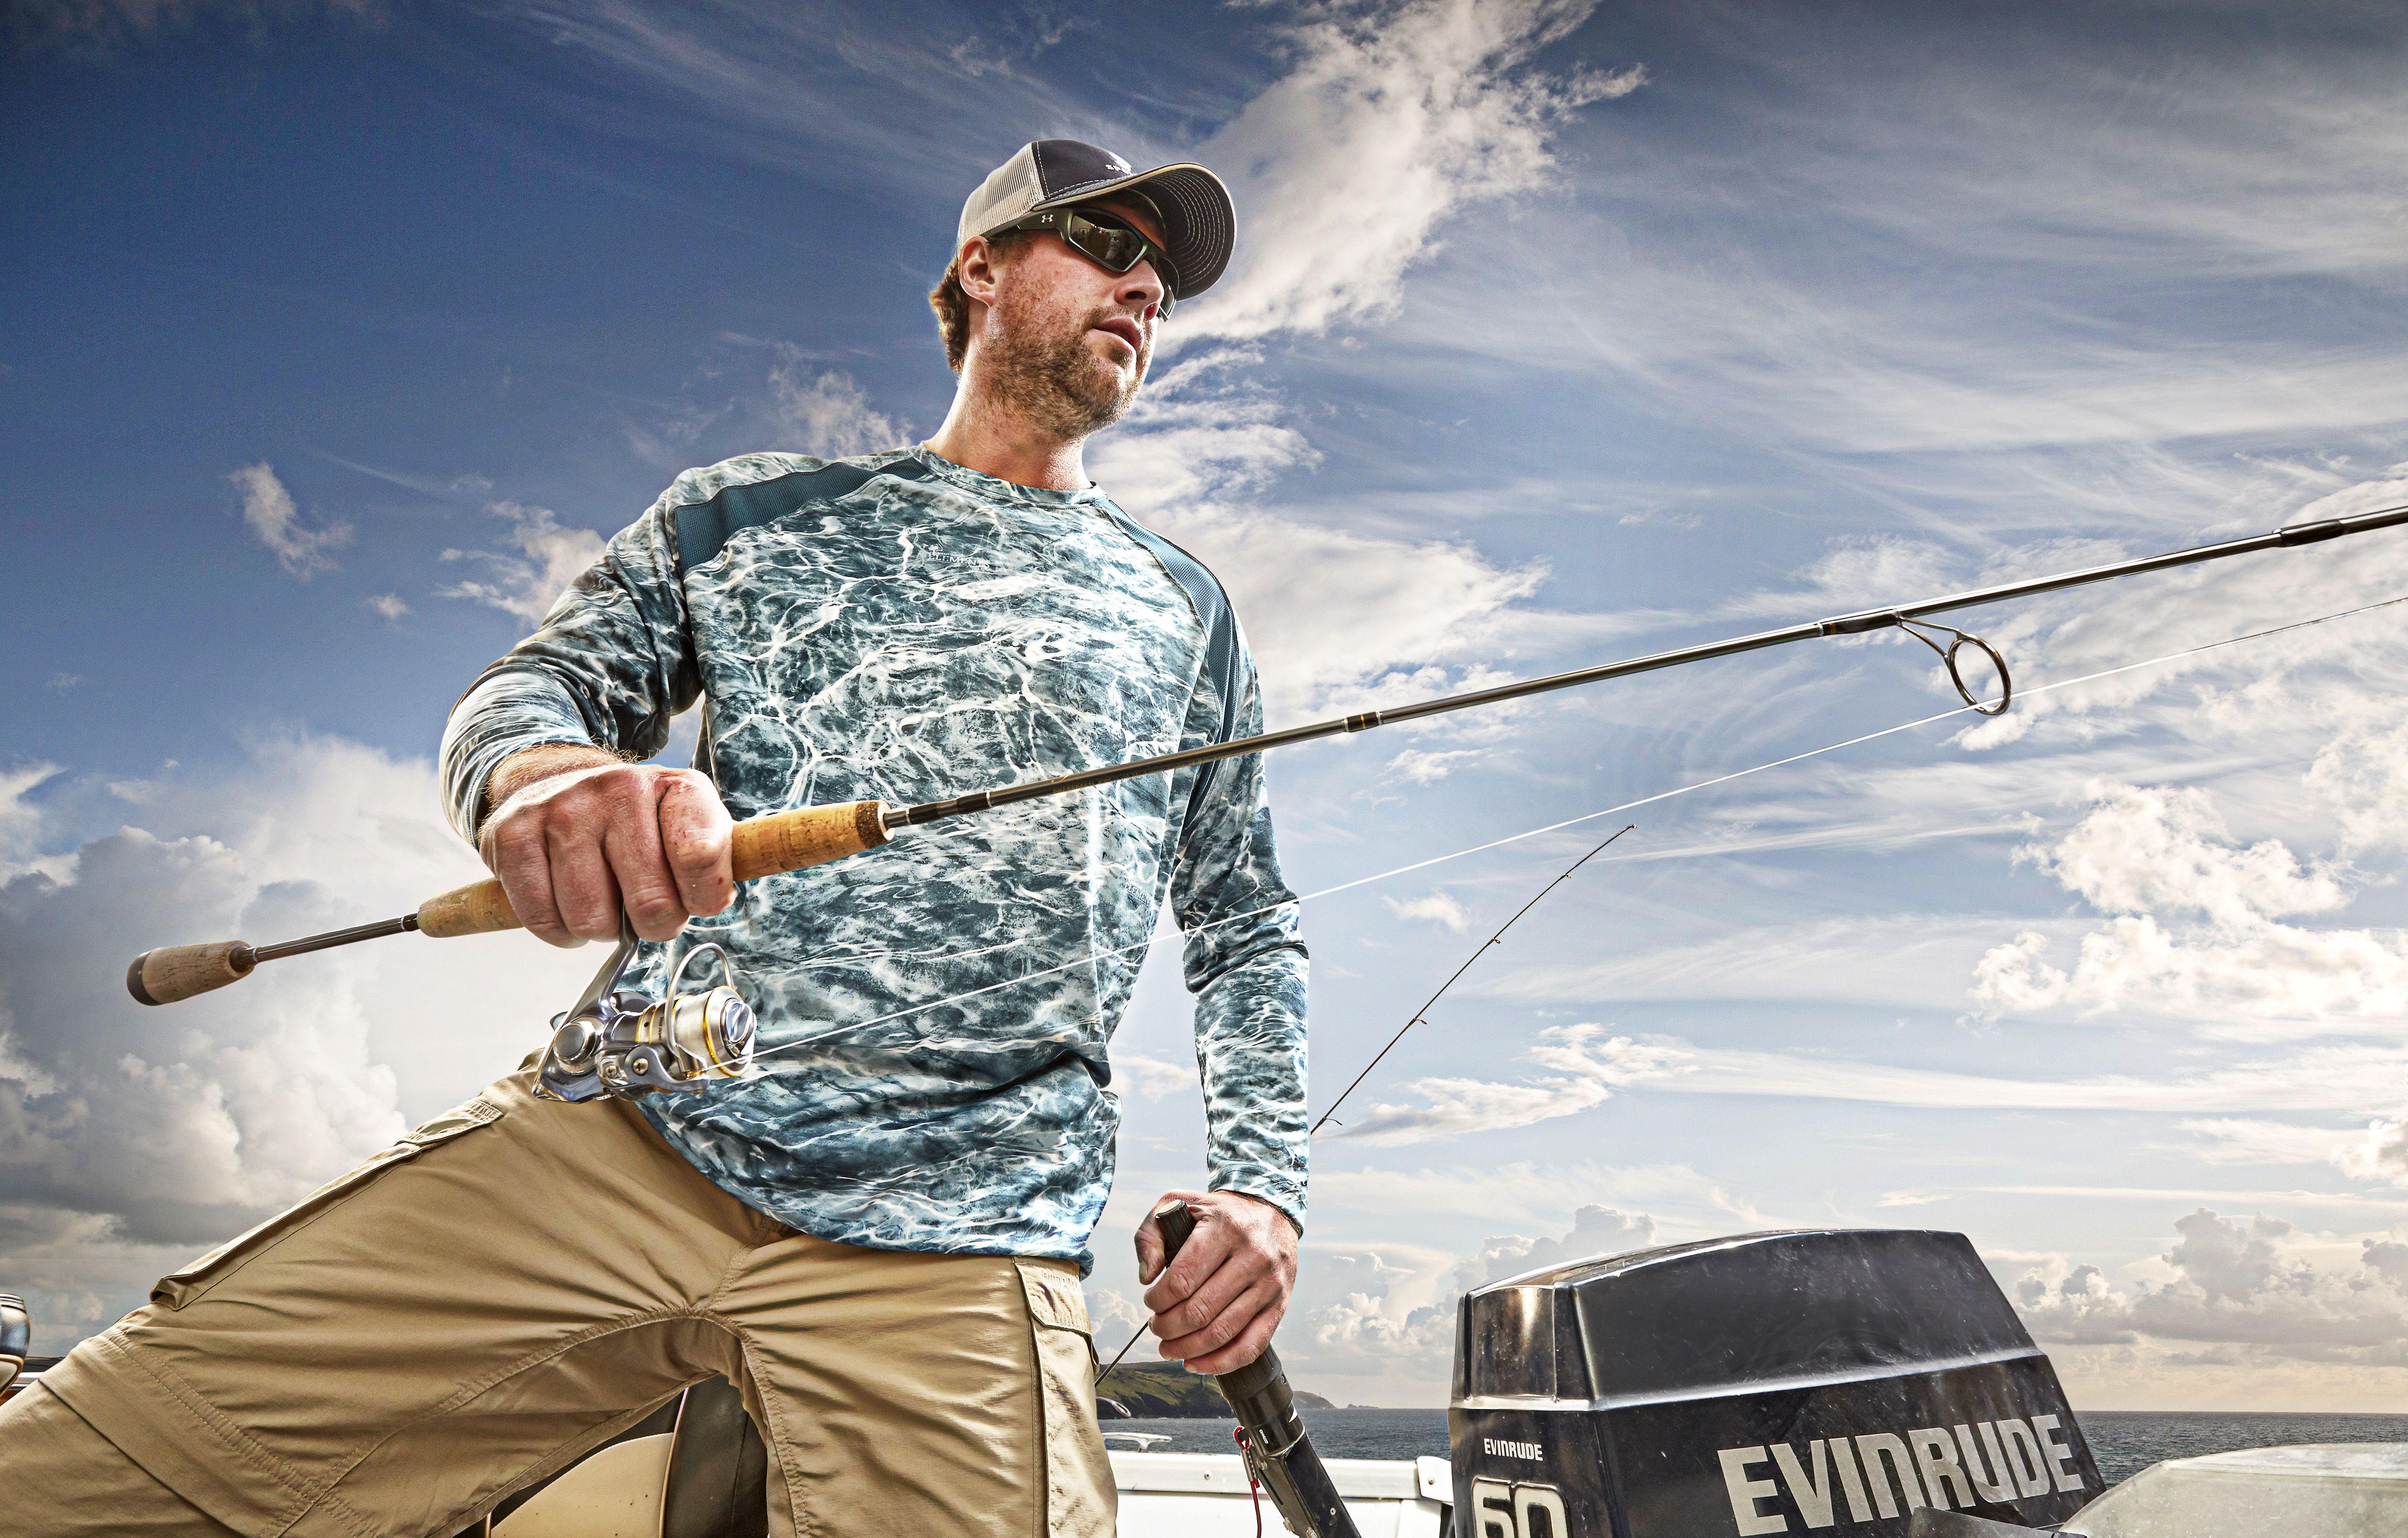 a9802239bd Performance Fishing Shirt with Mossy Oak Elements Agua is designed to defy  hot sun and biting bugs! UPF 50+